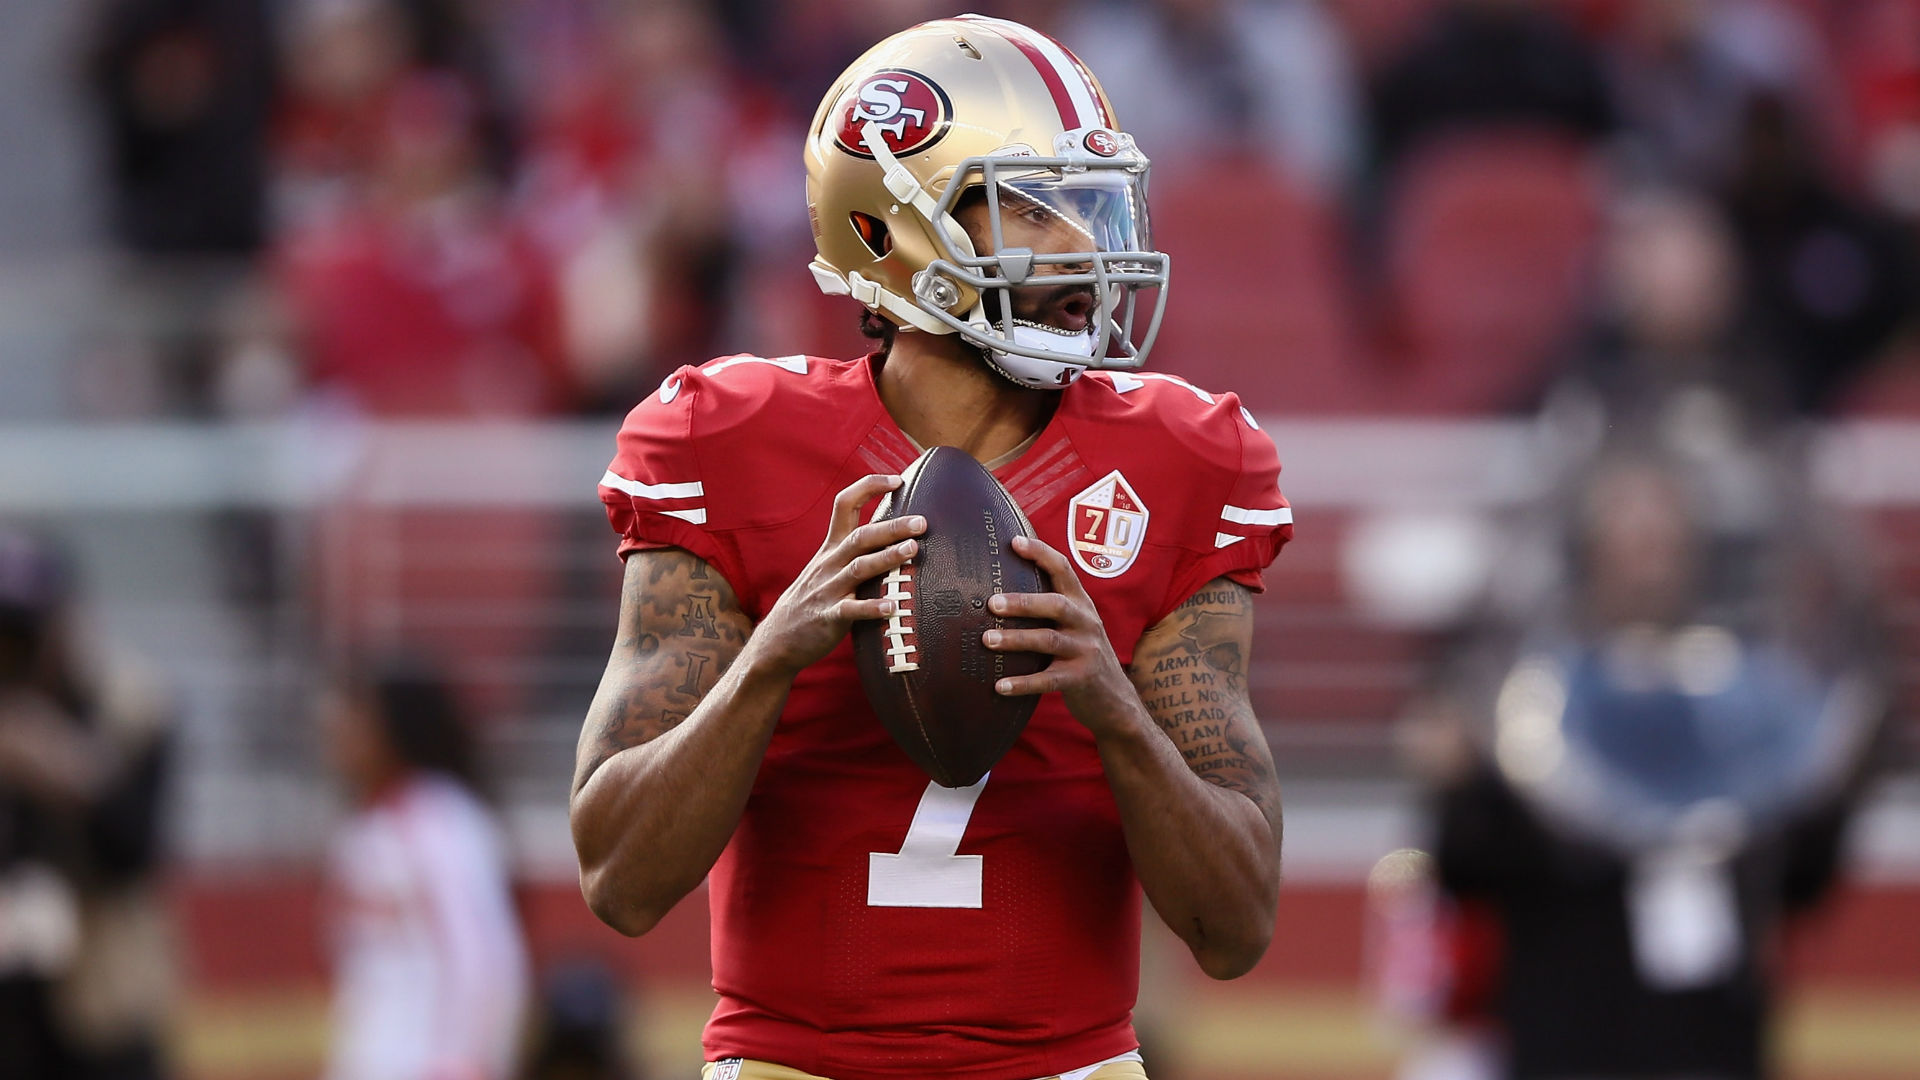 The 80 QBs with NFL starts since Colin Kaepernick's last appearance 1,000 days ago